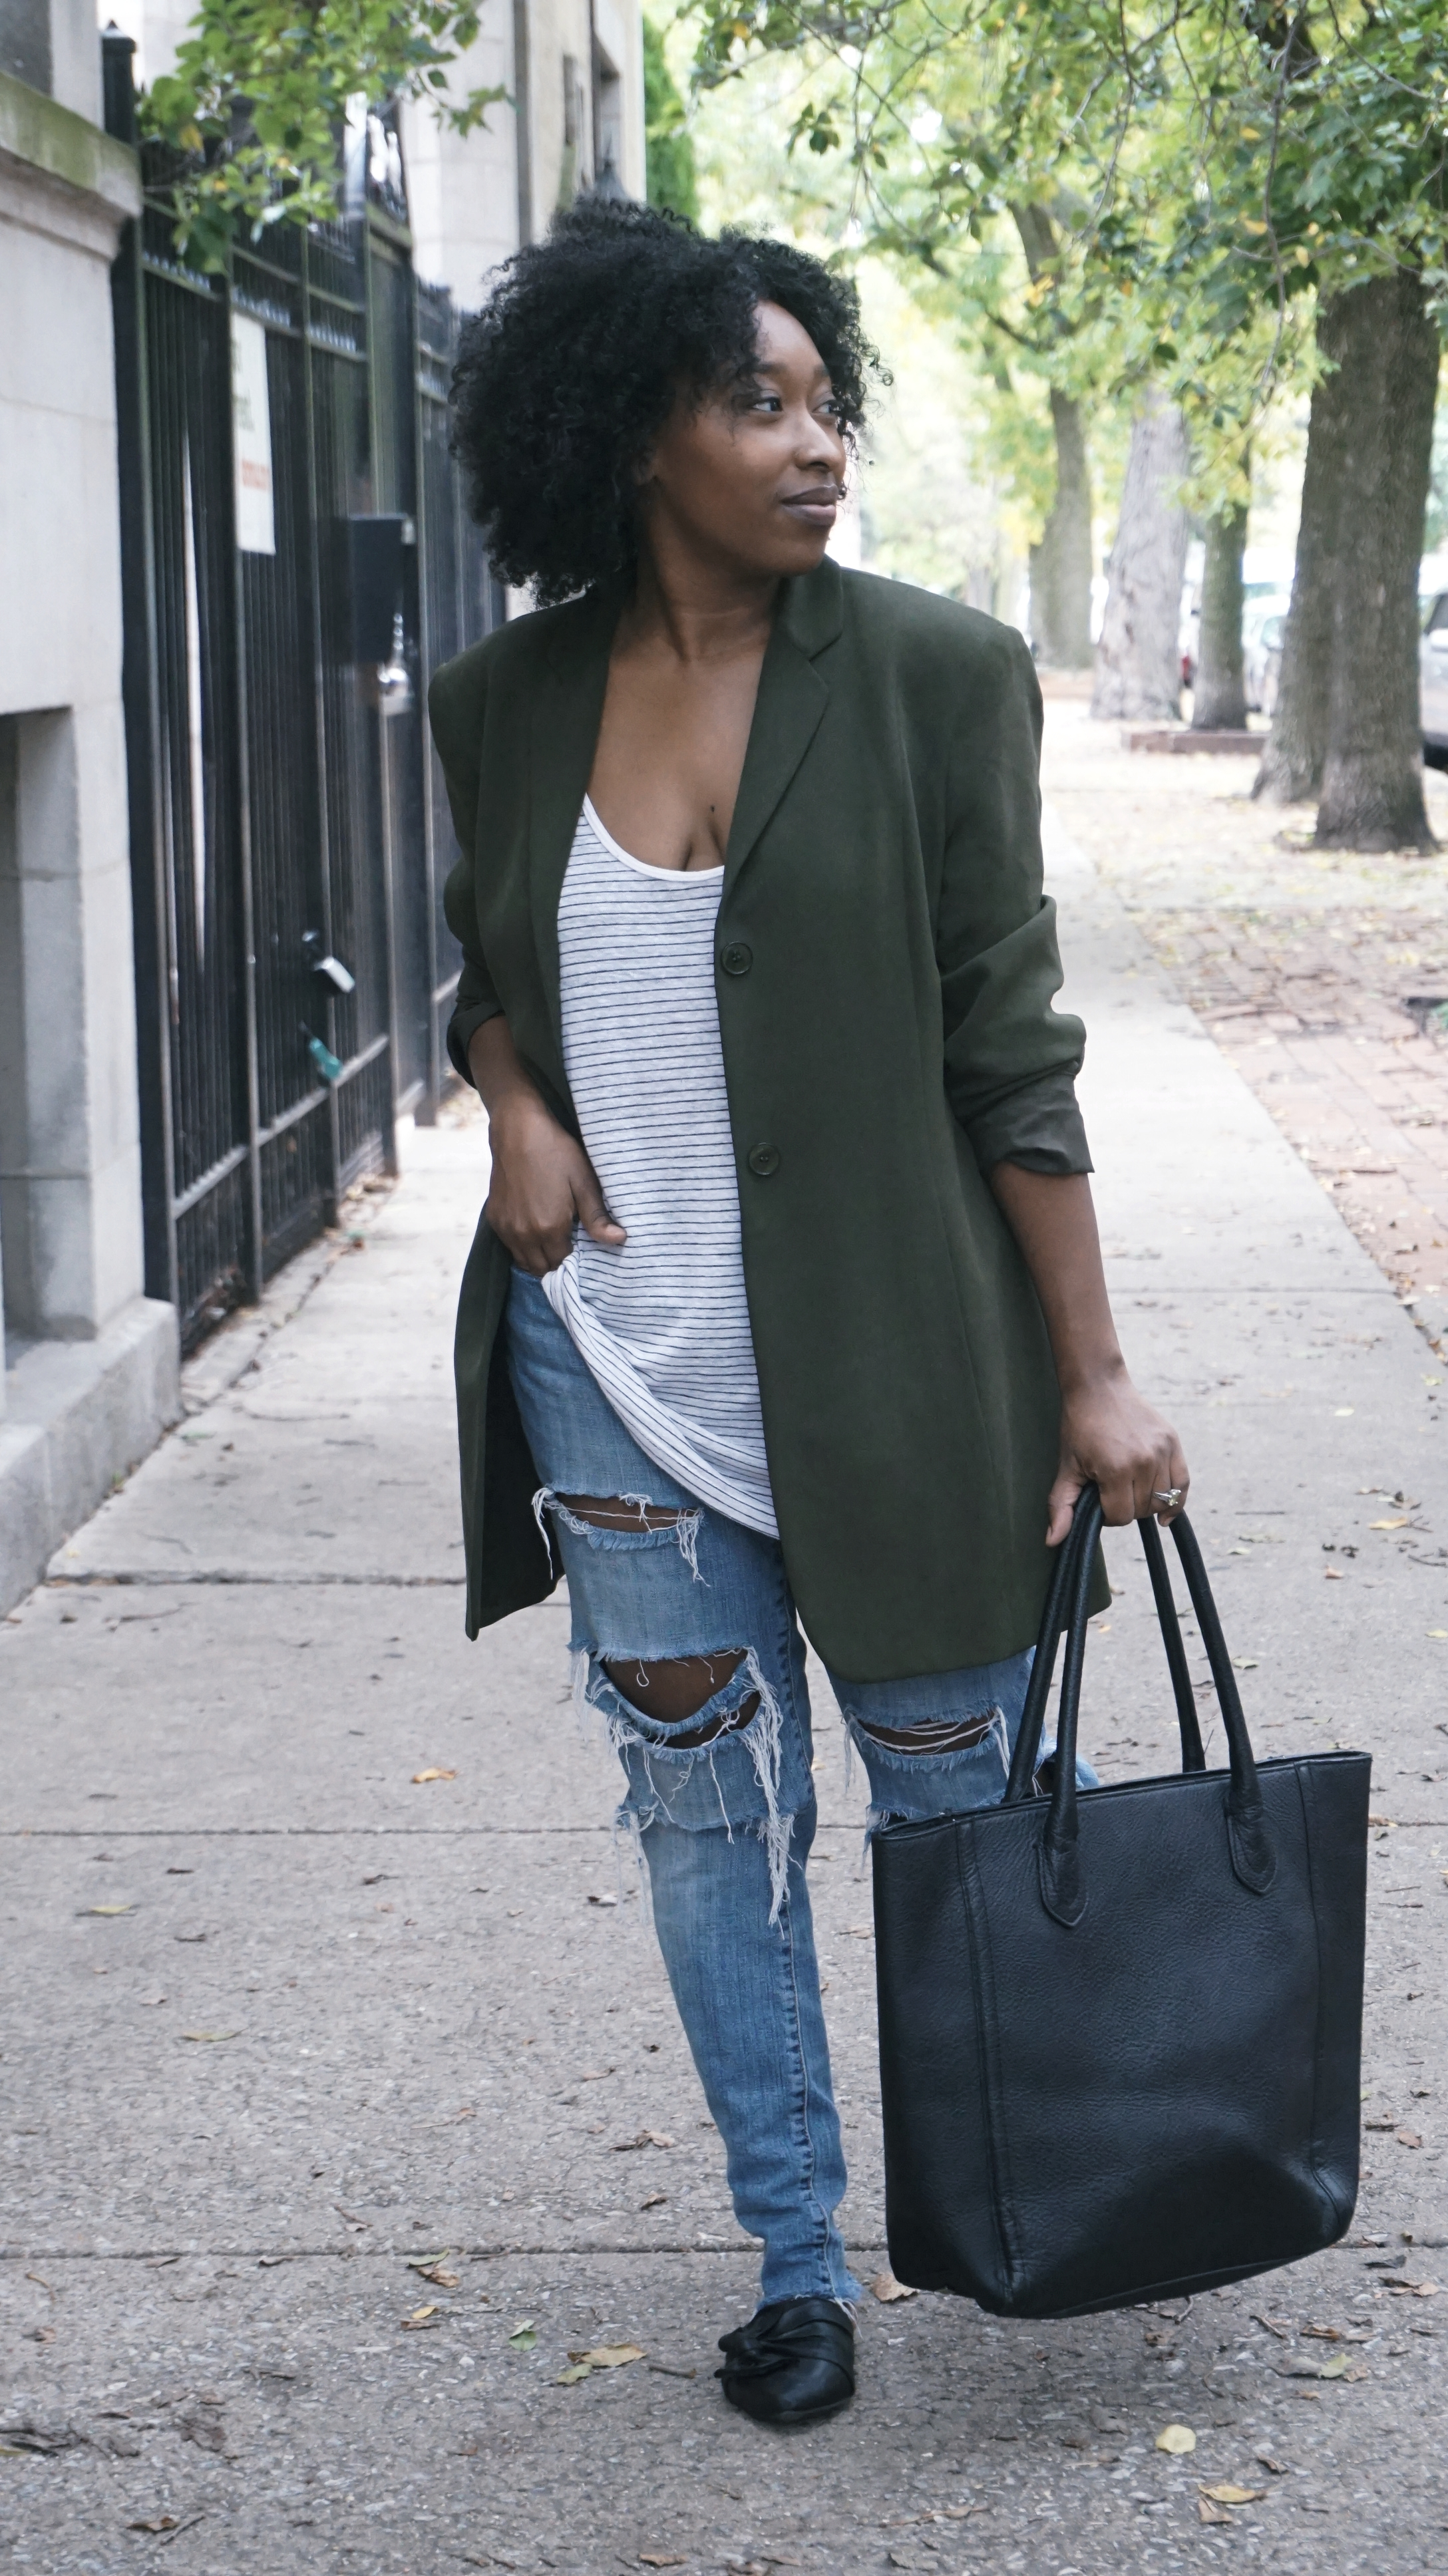 Green Blazer outfit